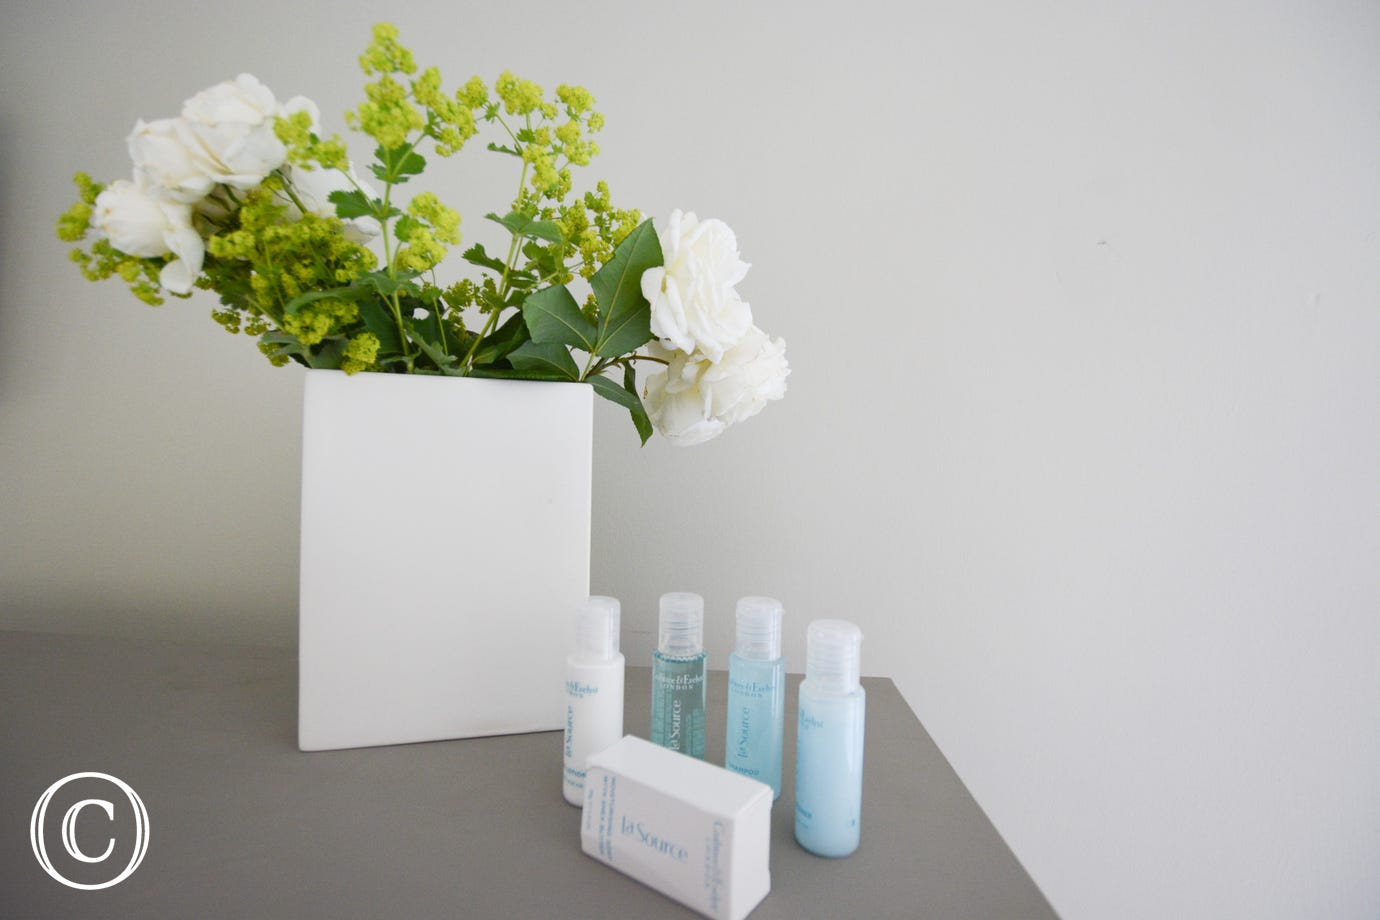 Toiletries for you in the bedroom